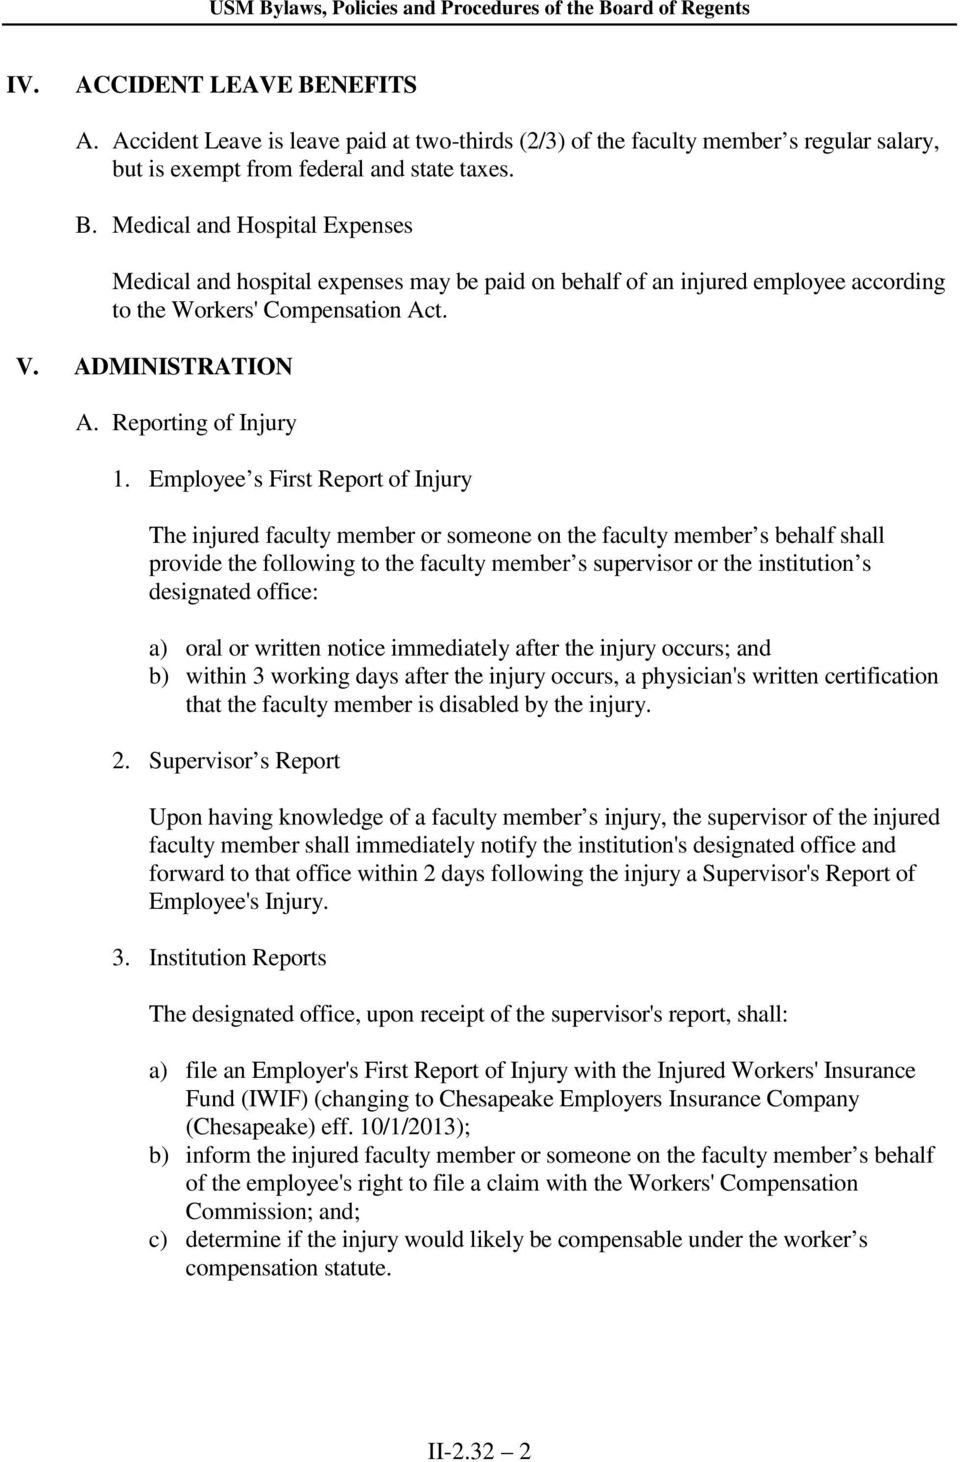 Employee s First Report of Injury The injured faculty member or someone on the faculty member s behalf shall provide the following to the faculty member s supervisor or the institution s designated